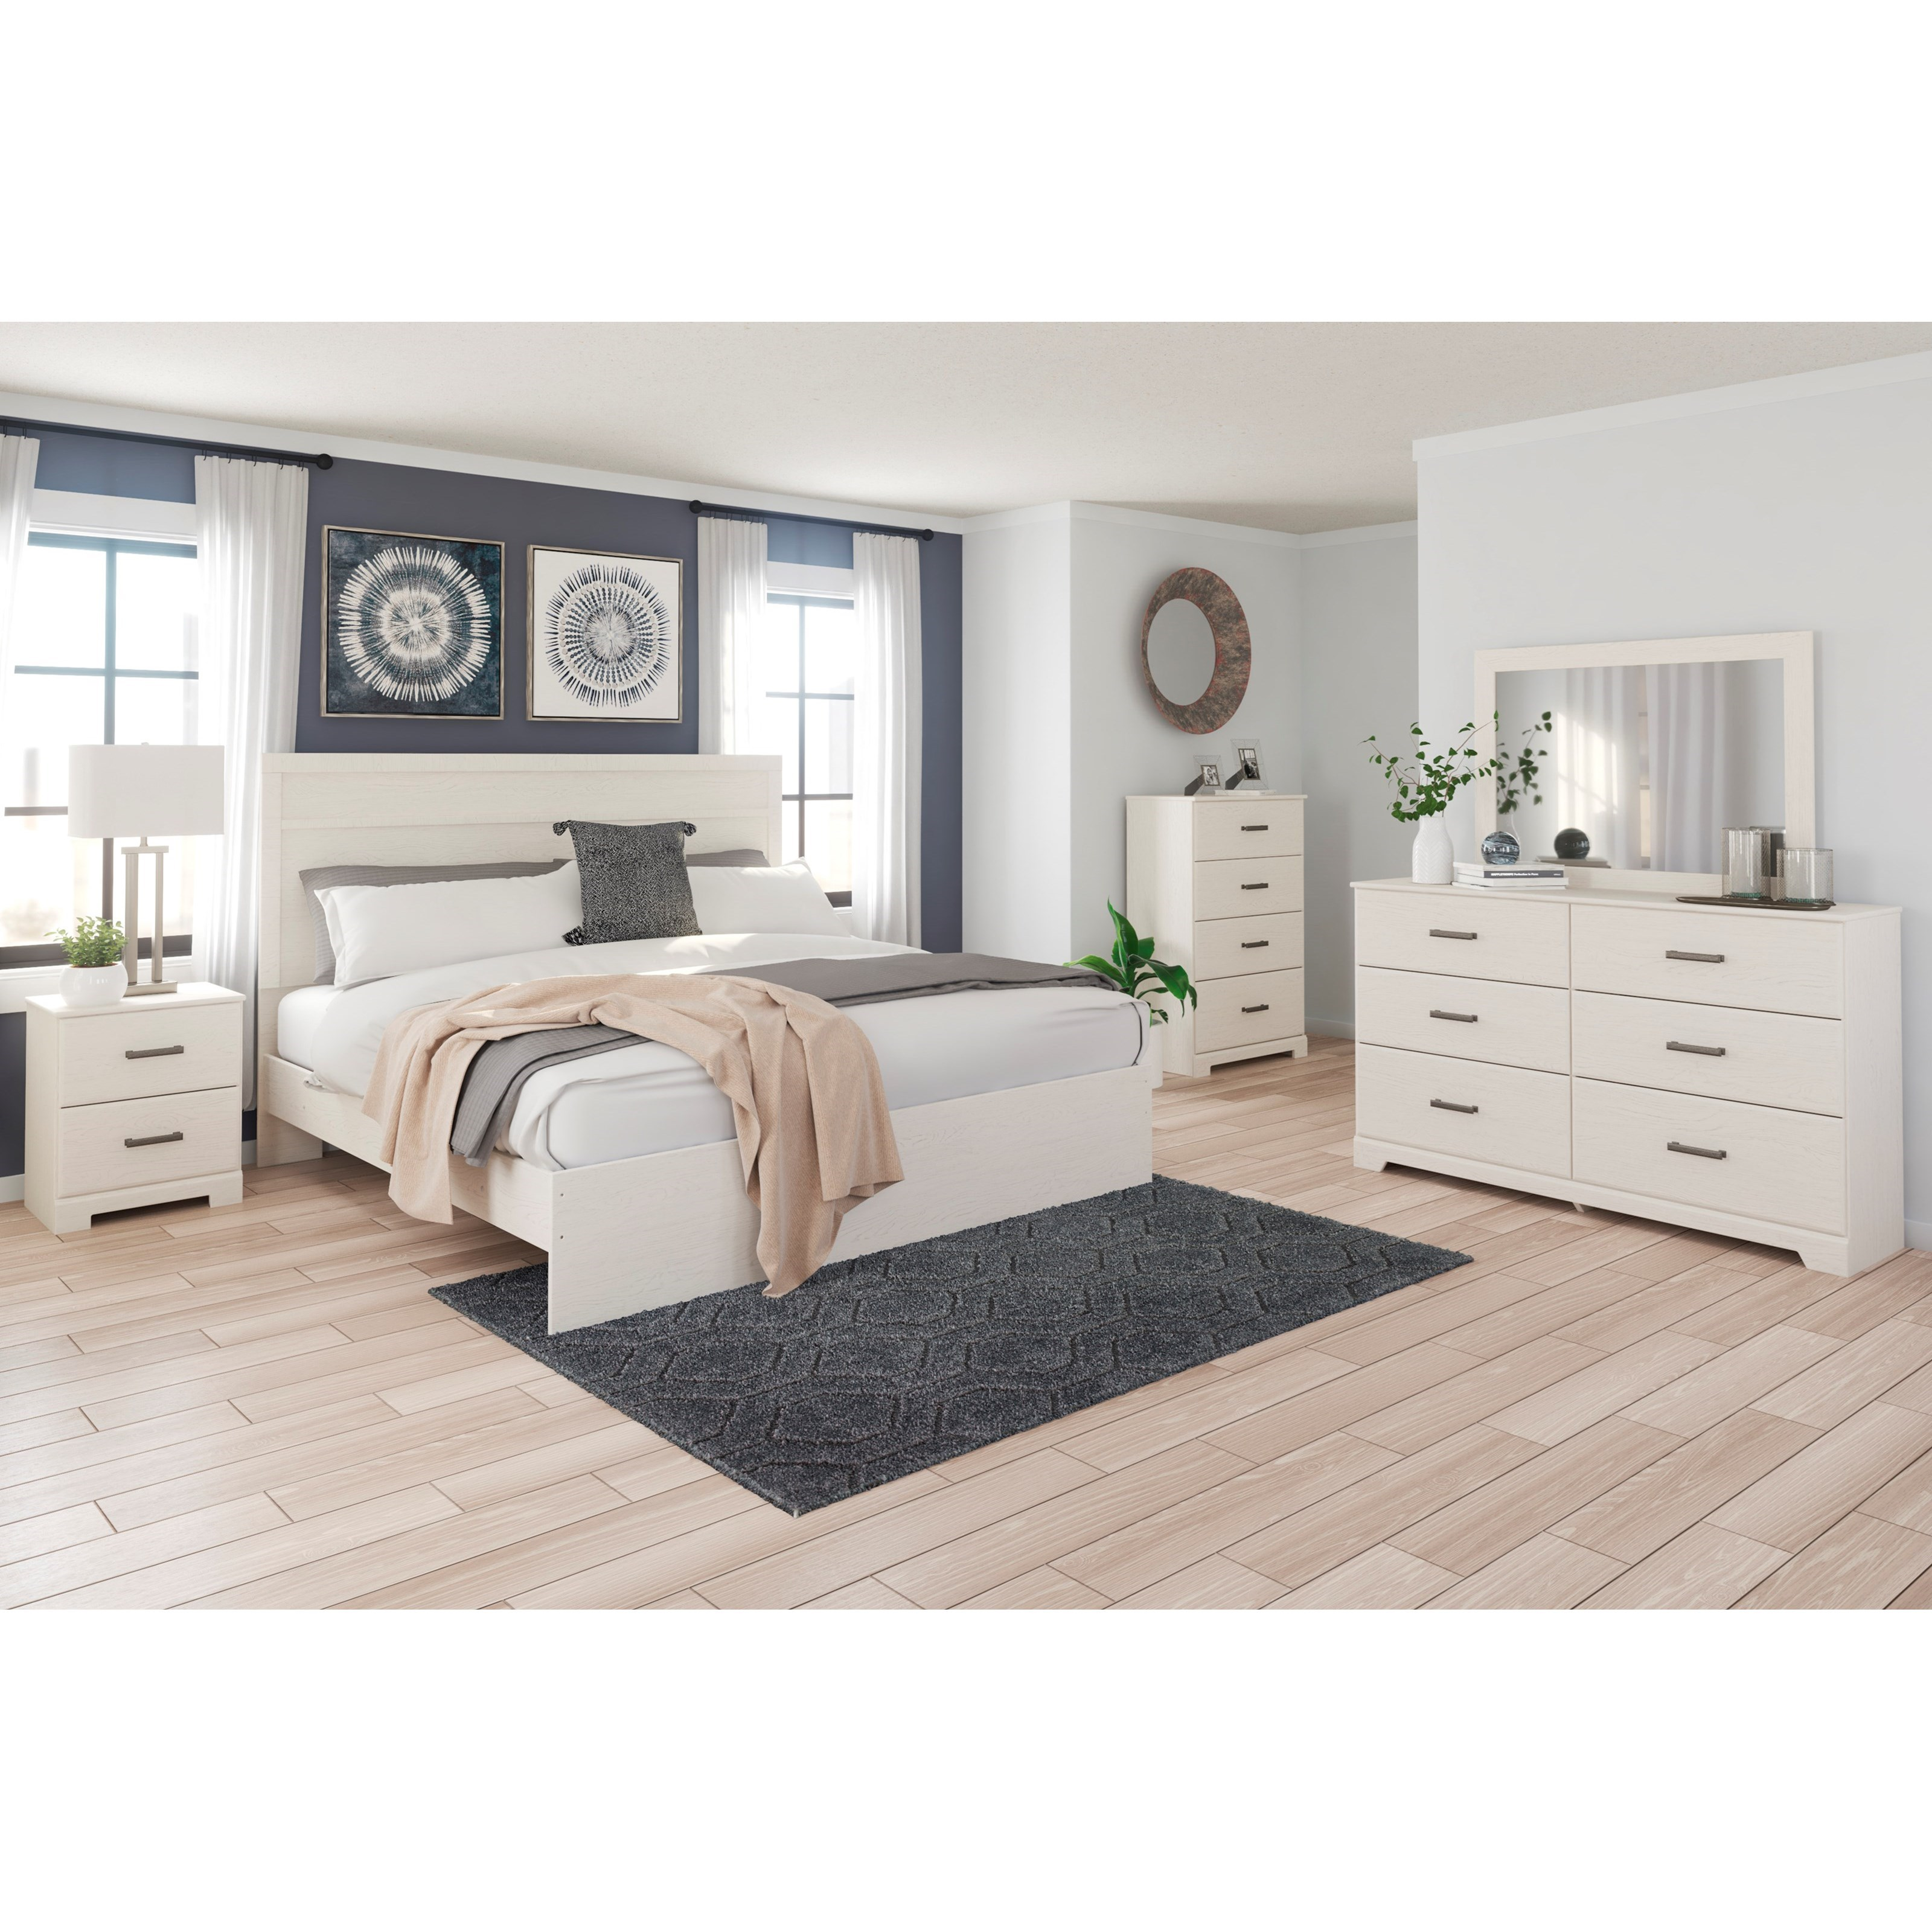 Stelsie King Bedroom Group by Signature Design by Ashley at Household Furniture